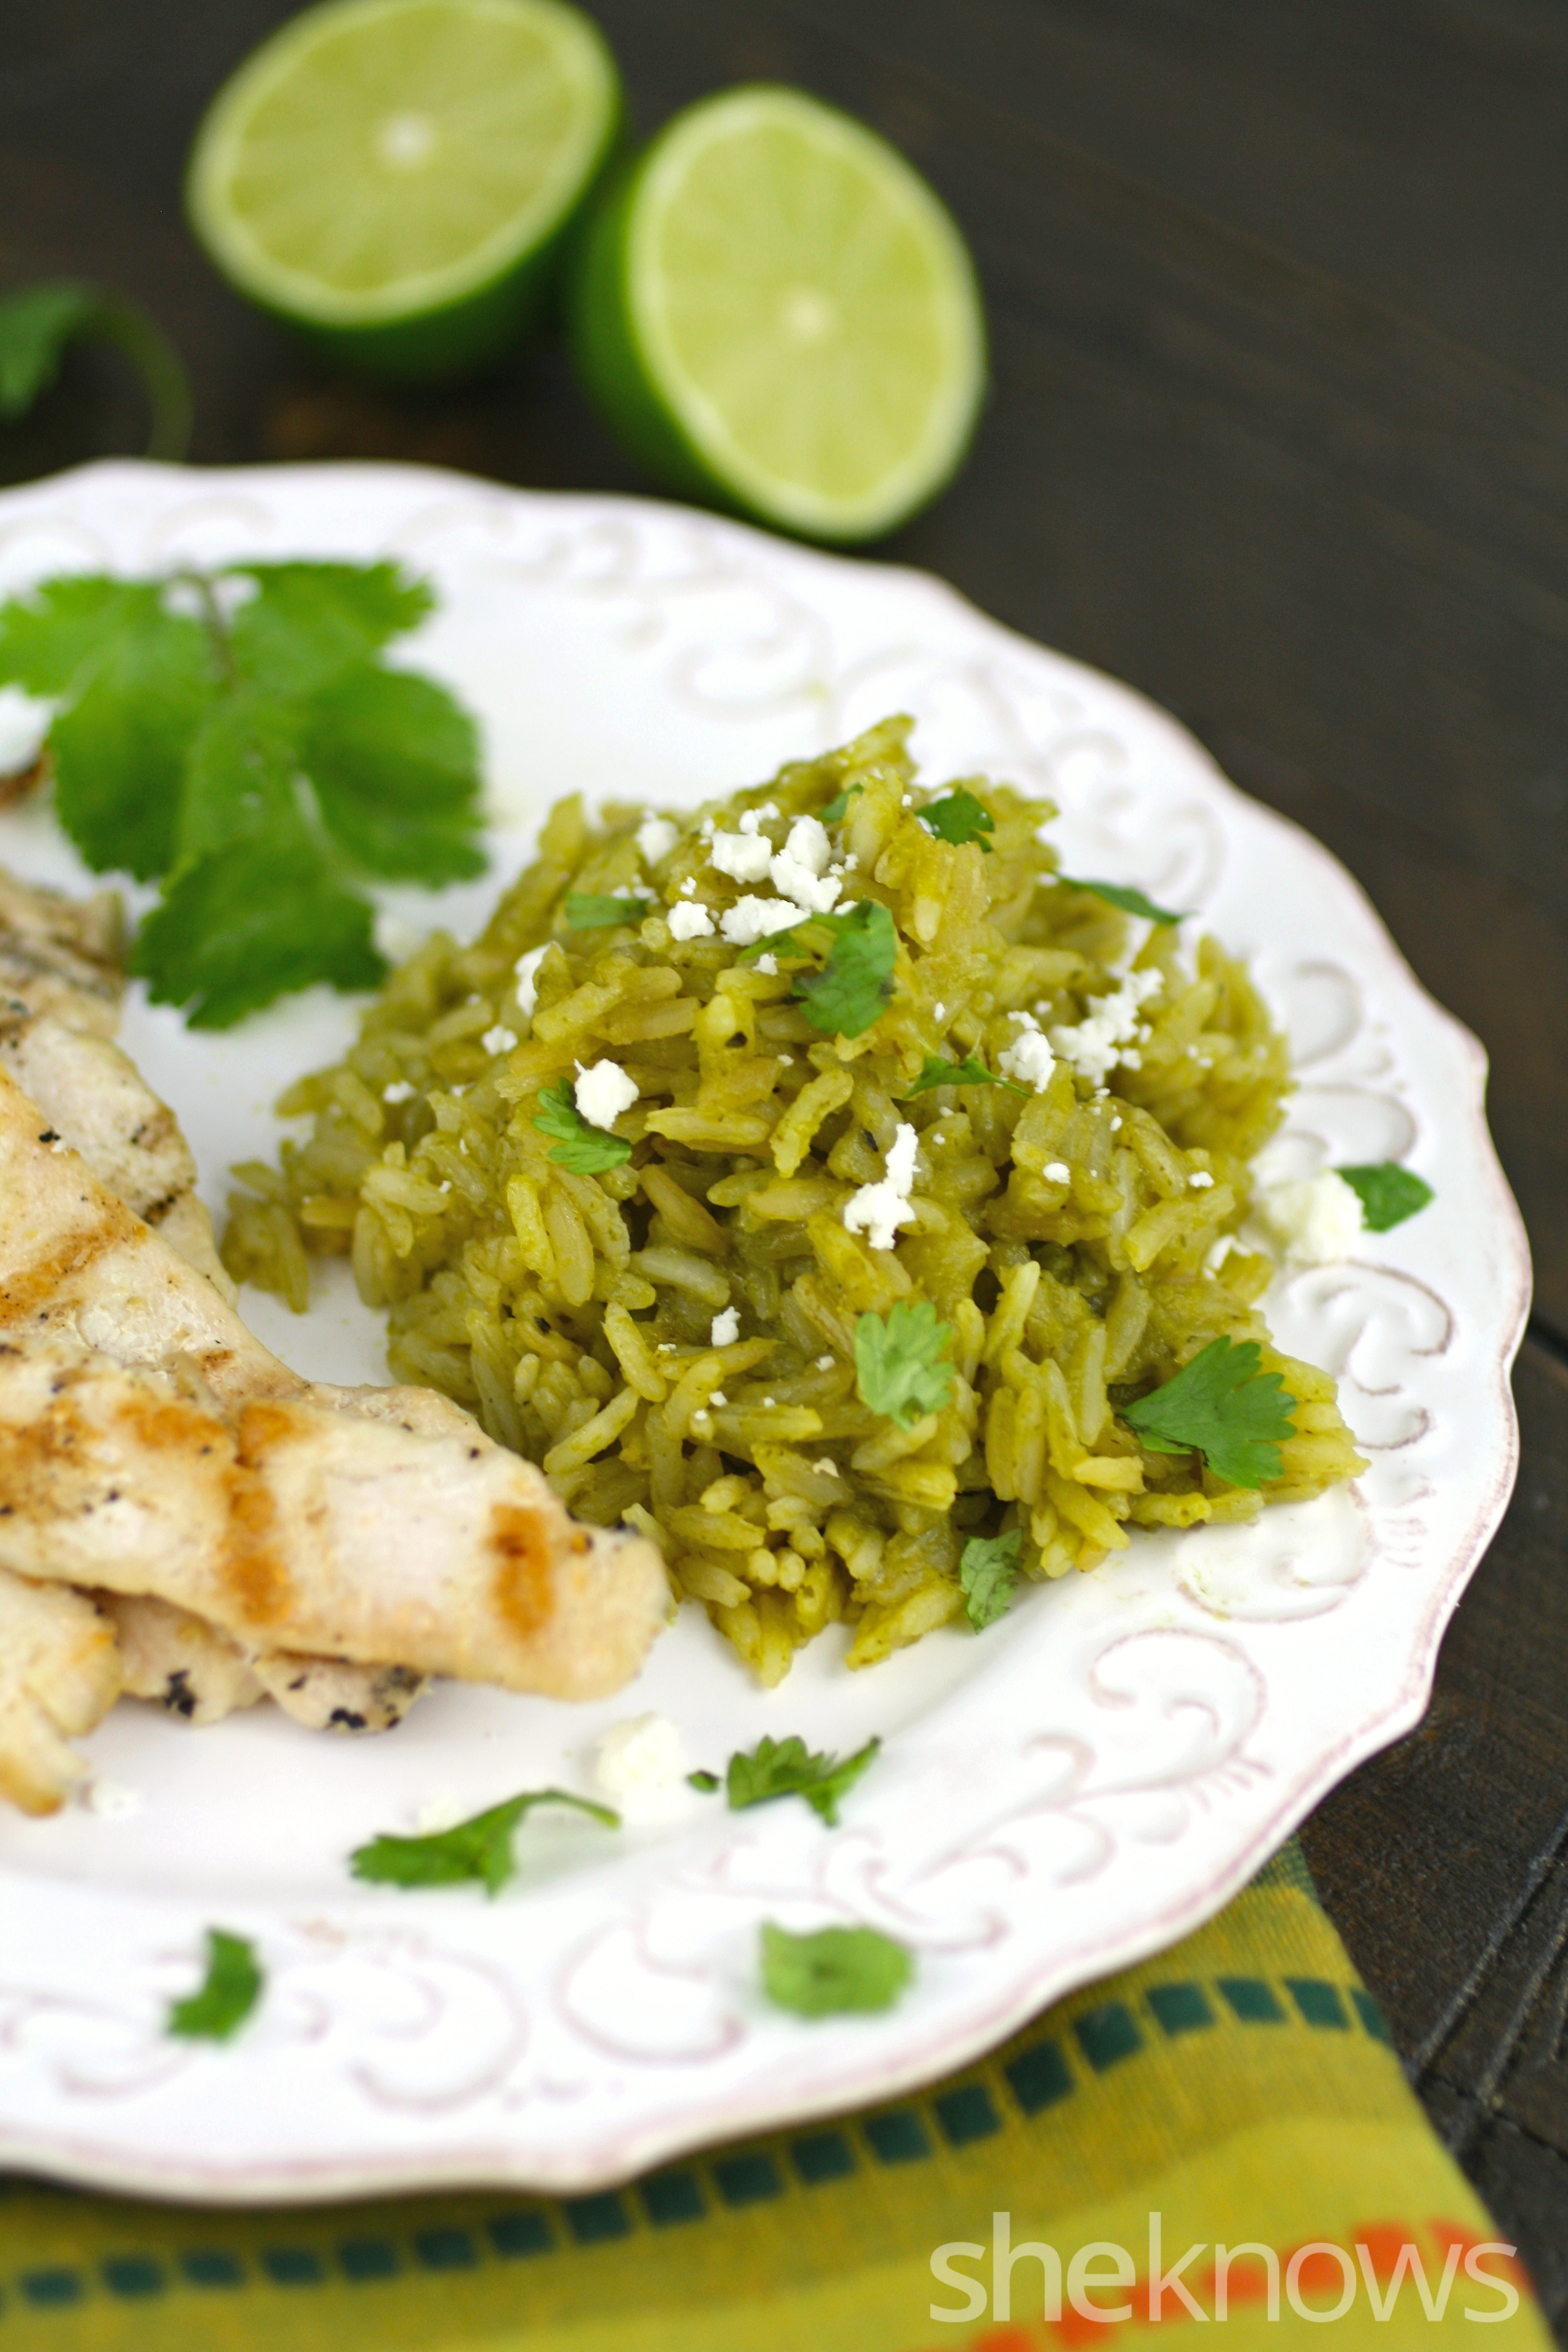 Enjoy arroz verde with grilled chicken as a flavorful gluten-free meal!